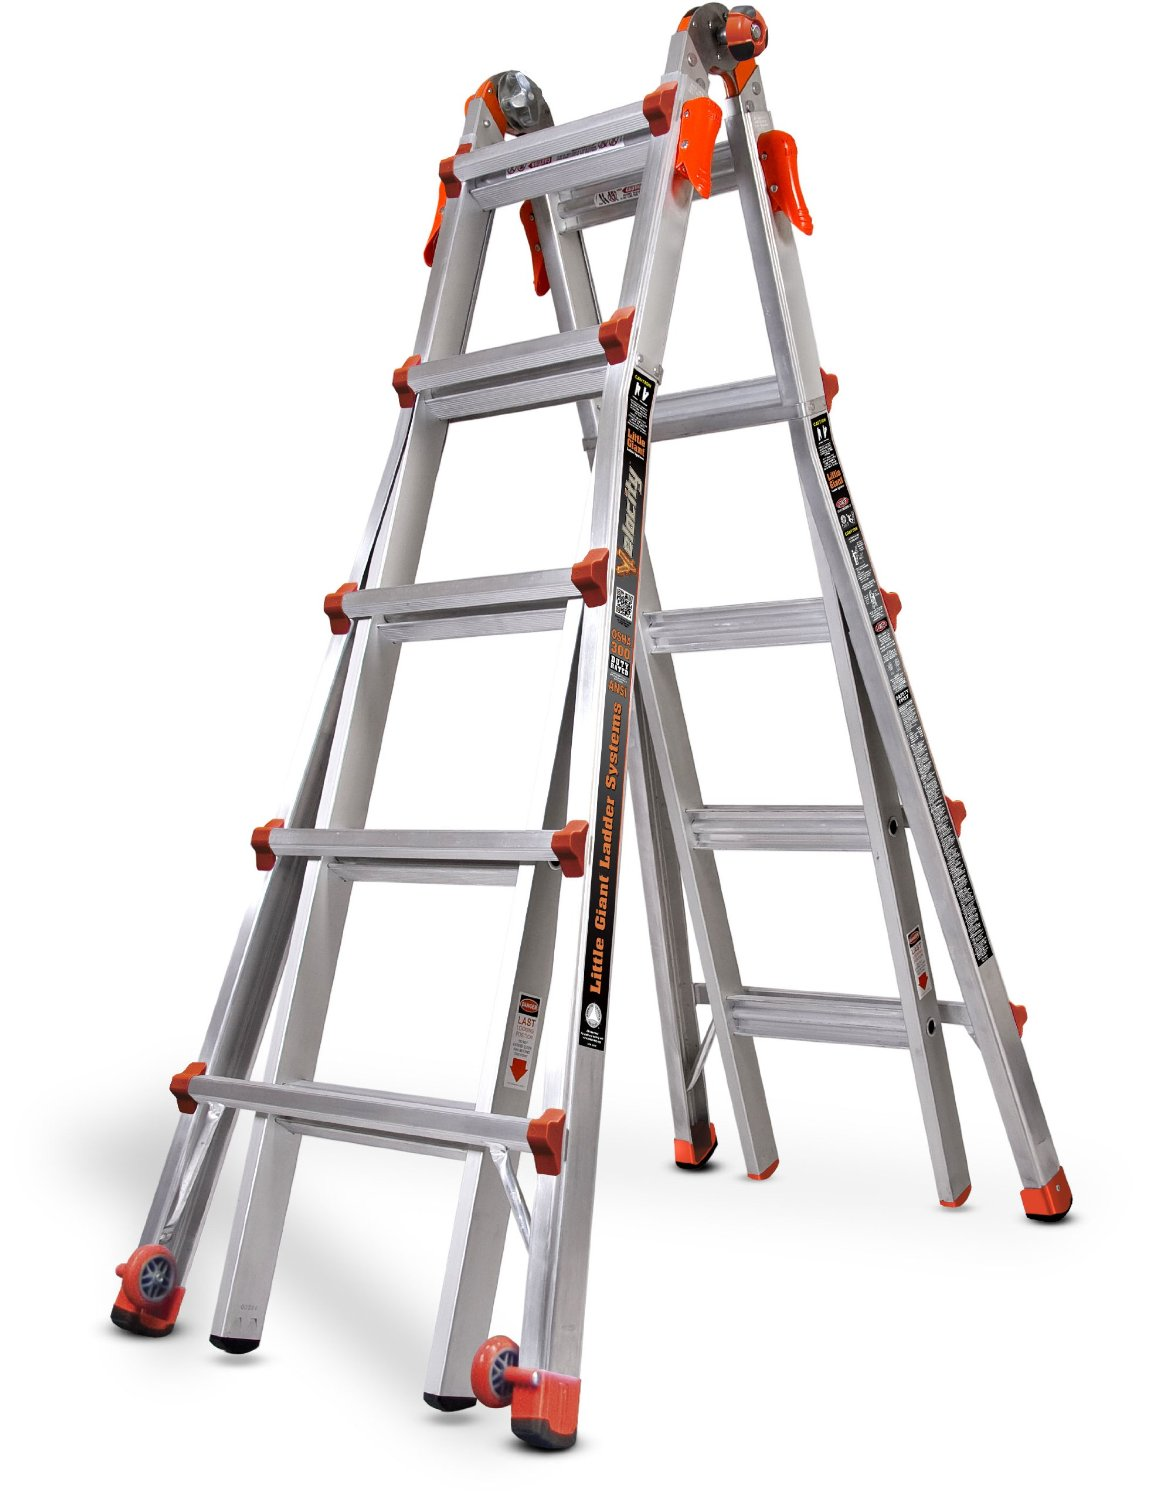 Innovations from Little Giant include a foot ladder that does the job of 18 different types of ladders. This is achieved by having several sizes of the same shape, such as an A-frame ladder, staircase ladder, degree ladder, extension ladder, and scaffolding. Best of all, many Little Giant ladders come installed with wheels so you can move them around with ease to accommodate just about any task.